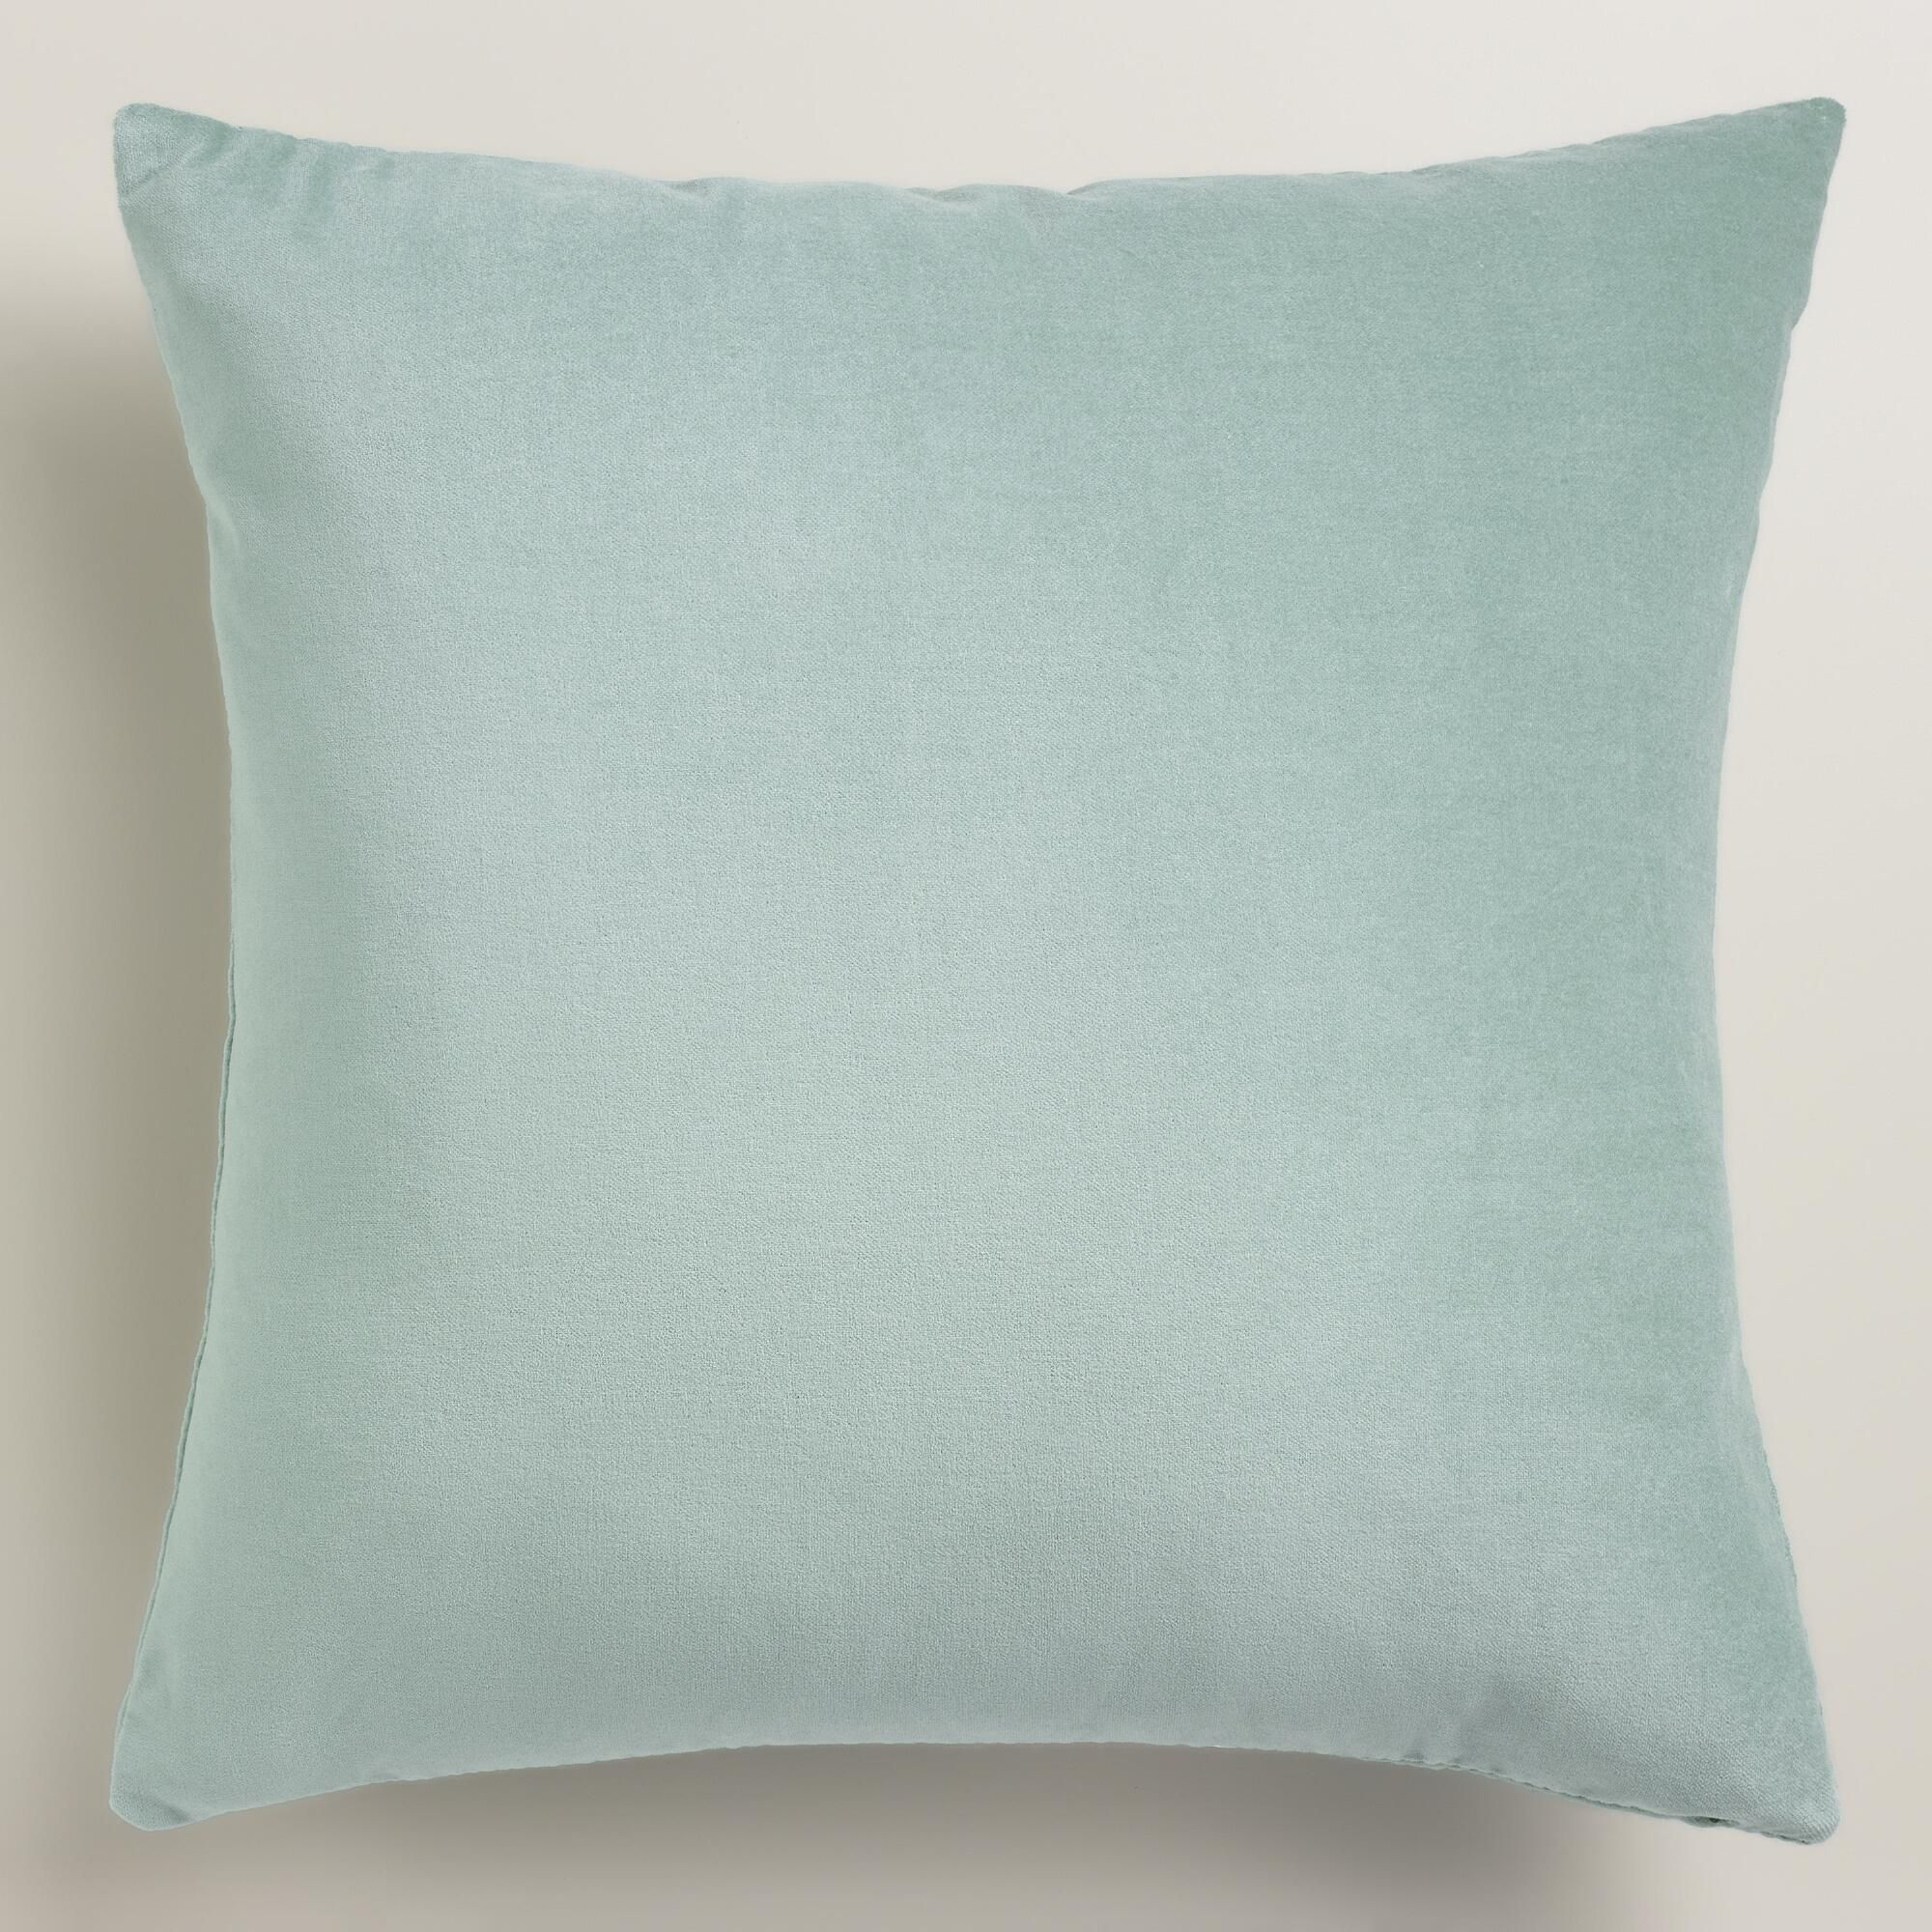 teal hand blue products x self crafted velvet colored bccf pillow designer with pillows throw solid flange